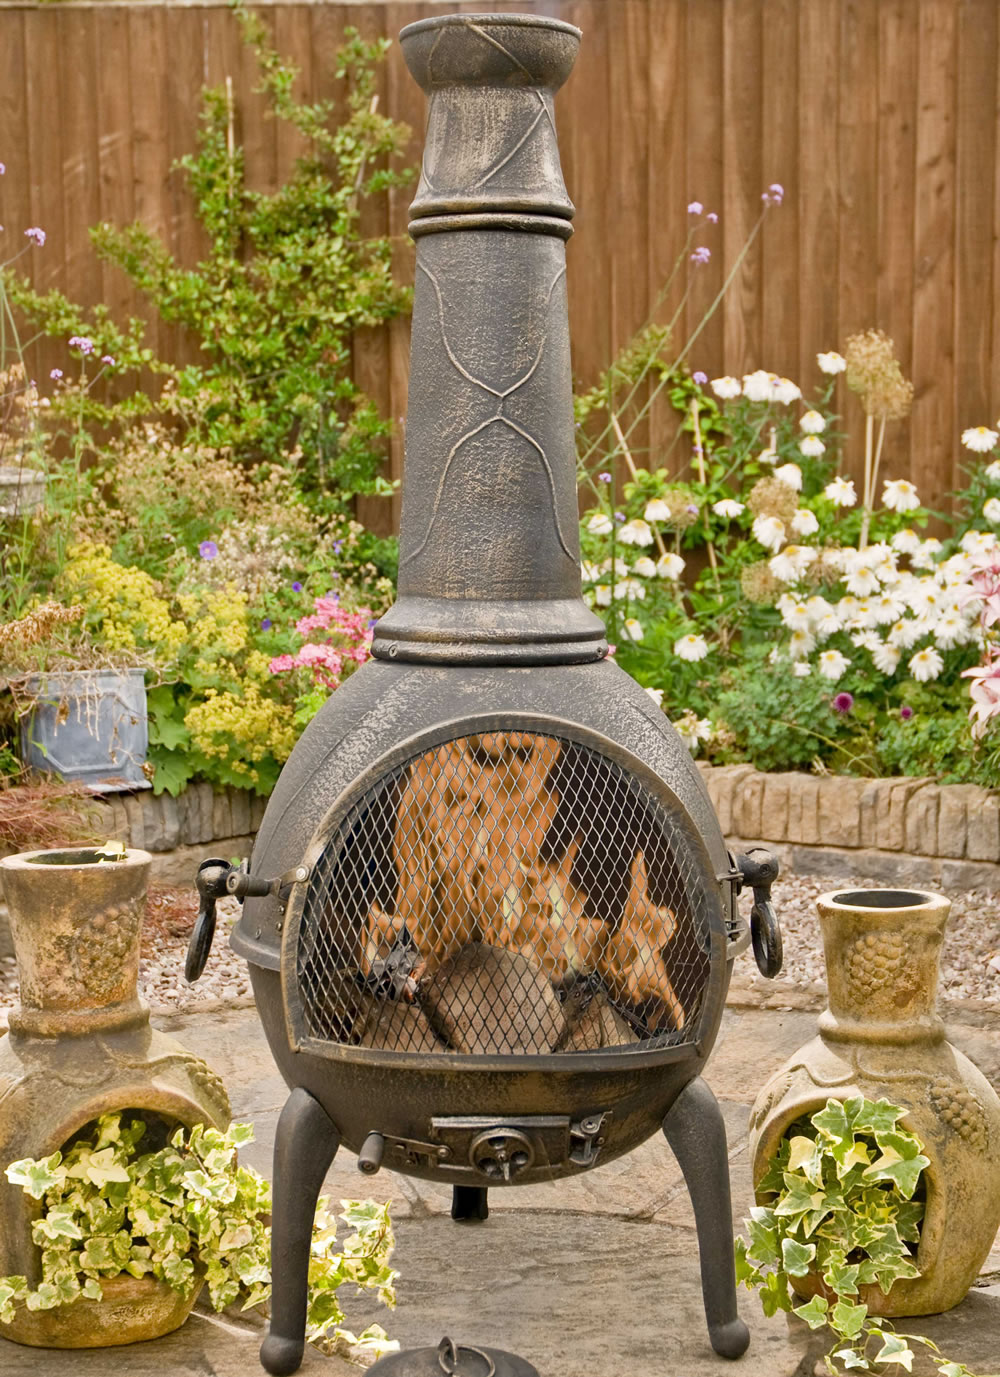 Sierra Bronze Jumbo Cast Iron Chimenea Fireplace With